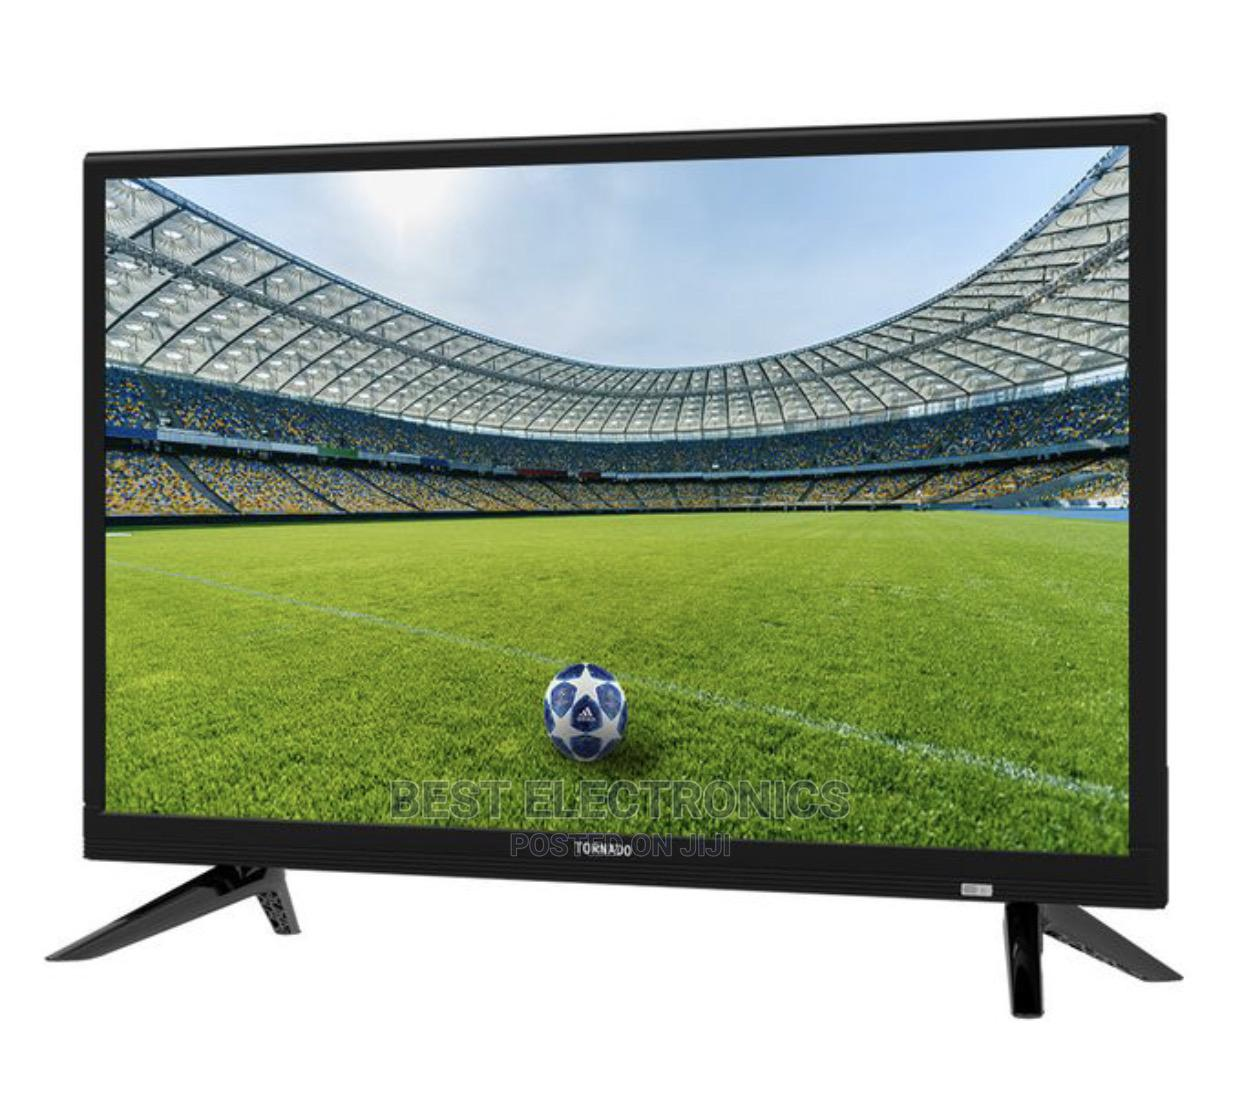 Tornado LED TV 24 Inch HD With 2 HDMI and 2 USB Inputs